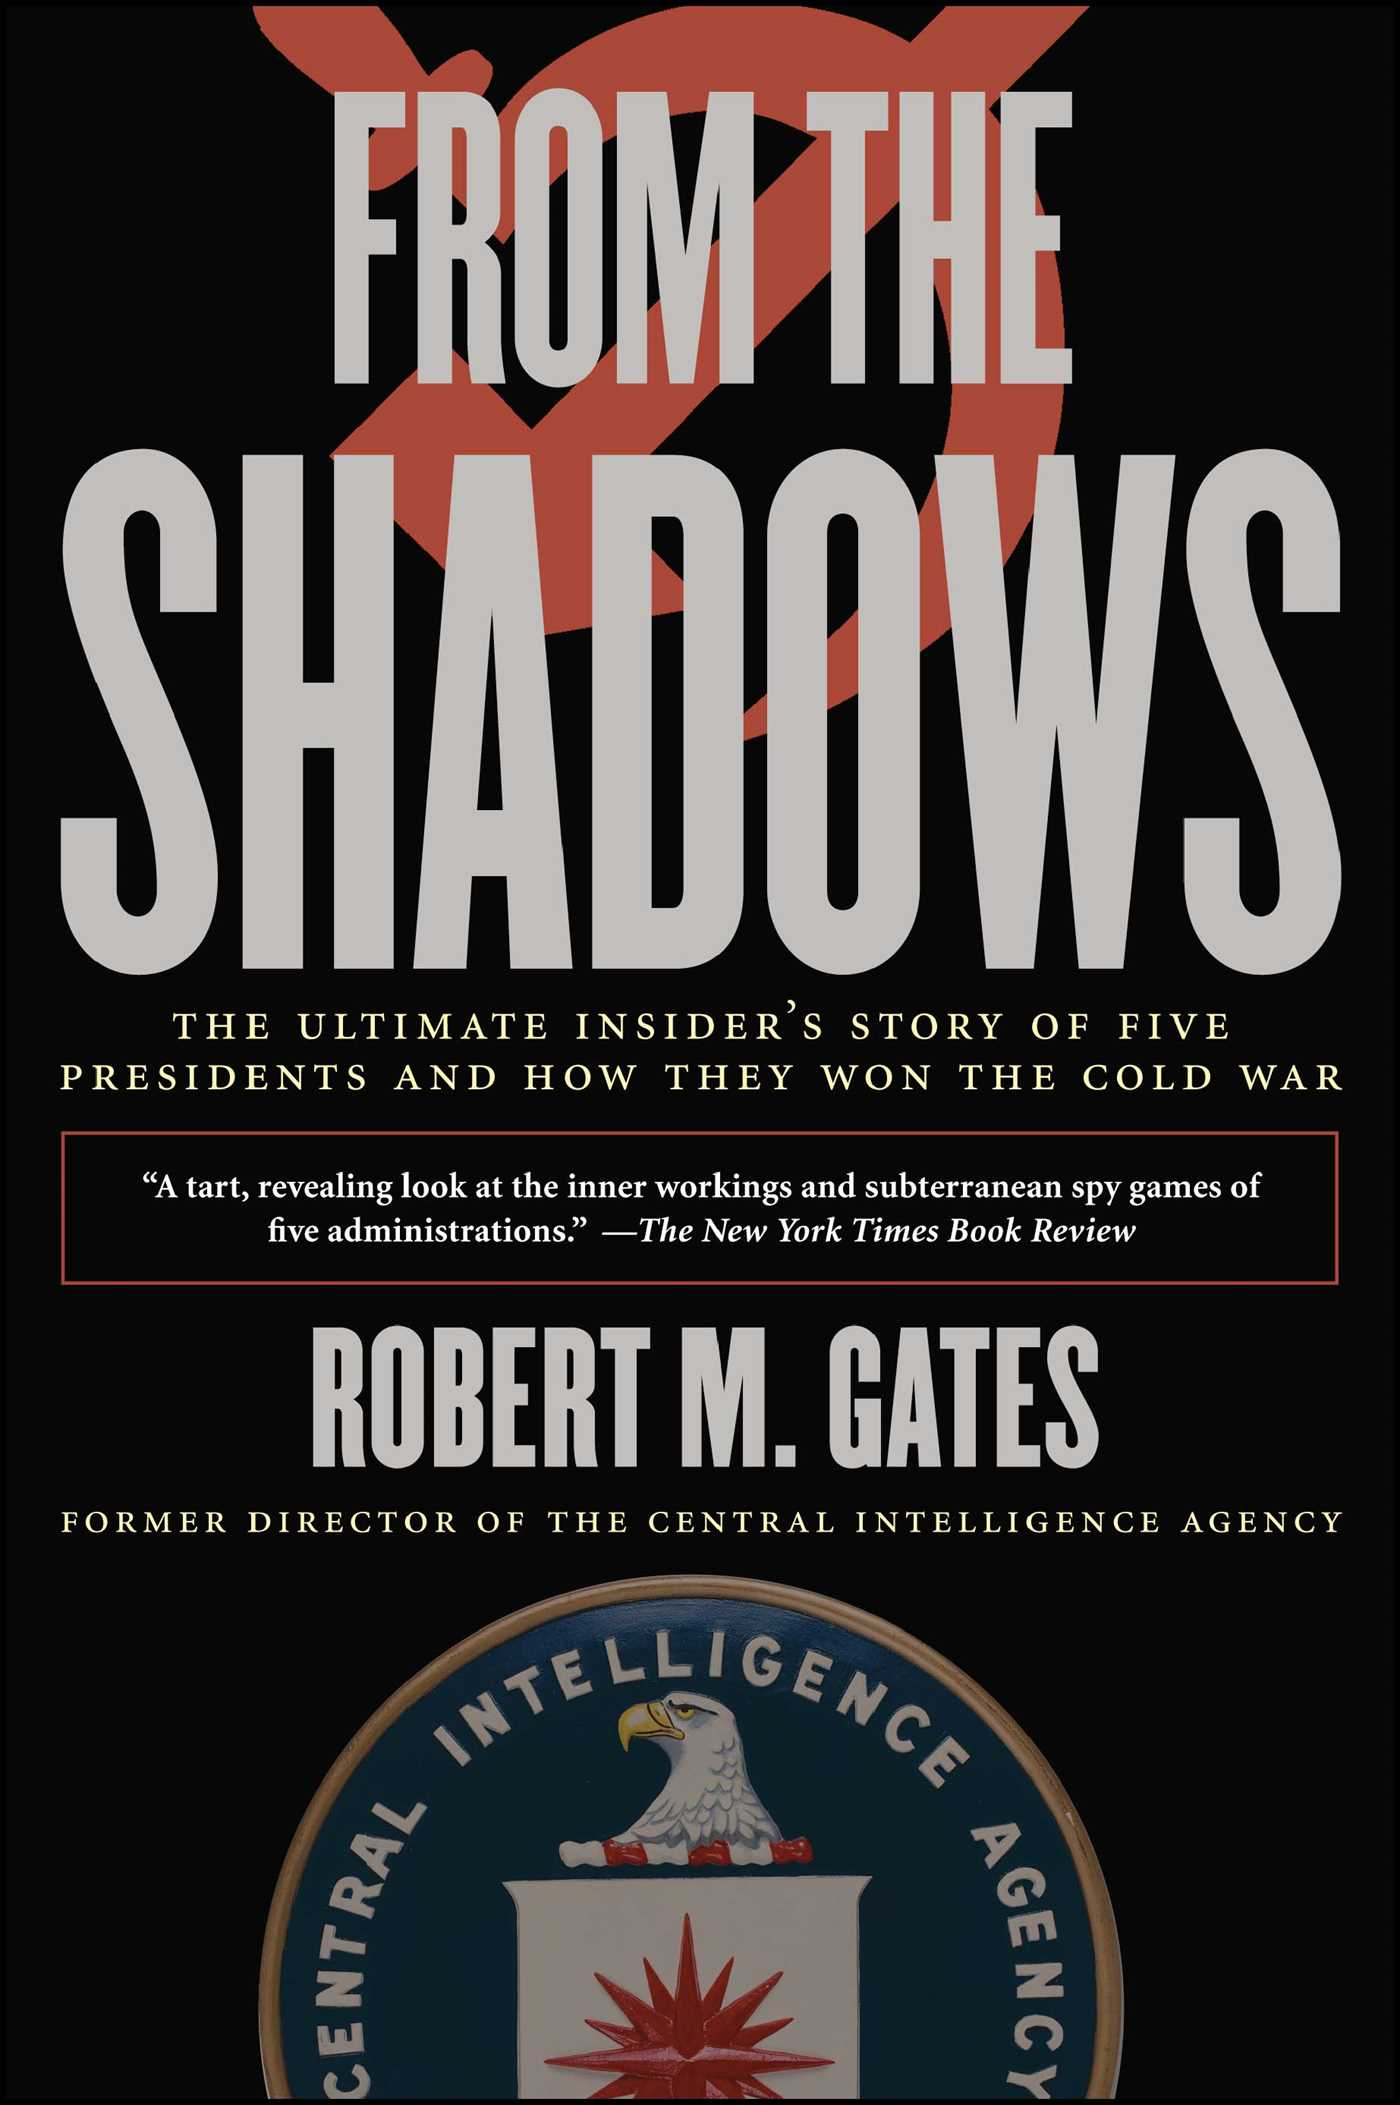 From the shadows 9781416543367 hr